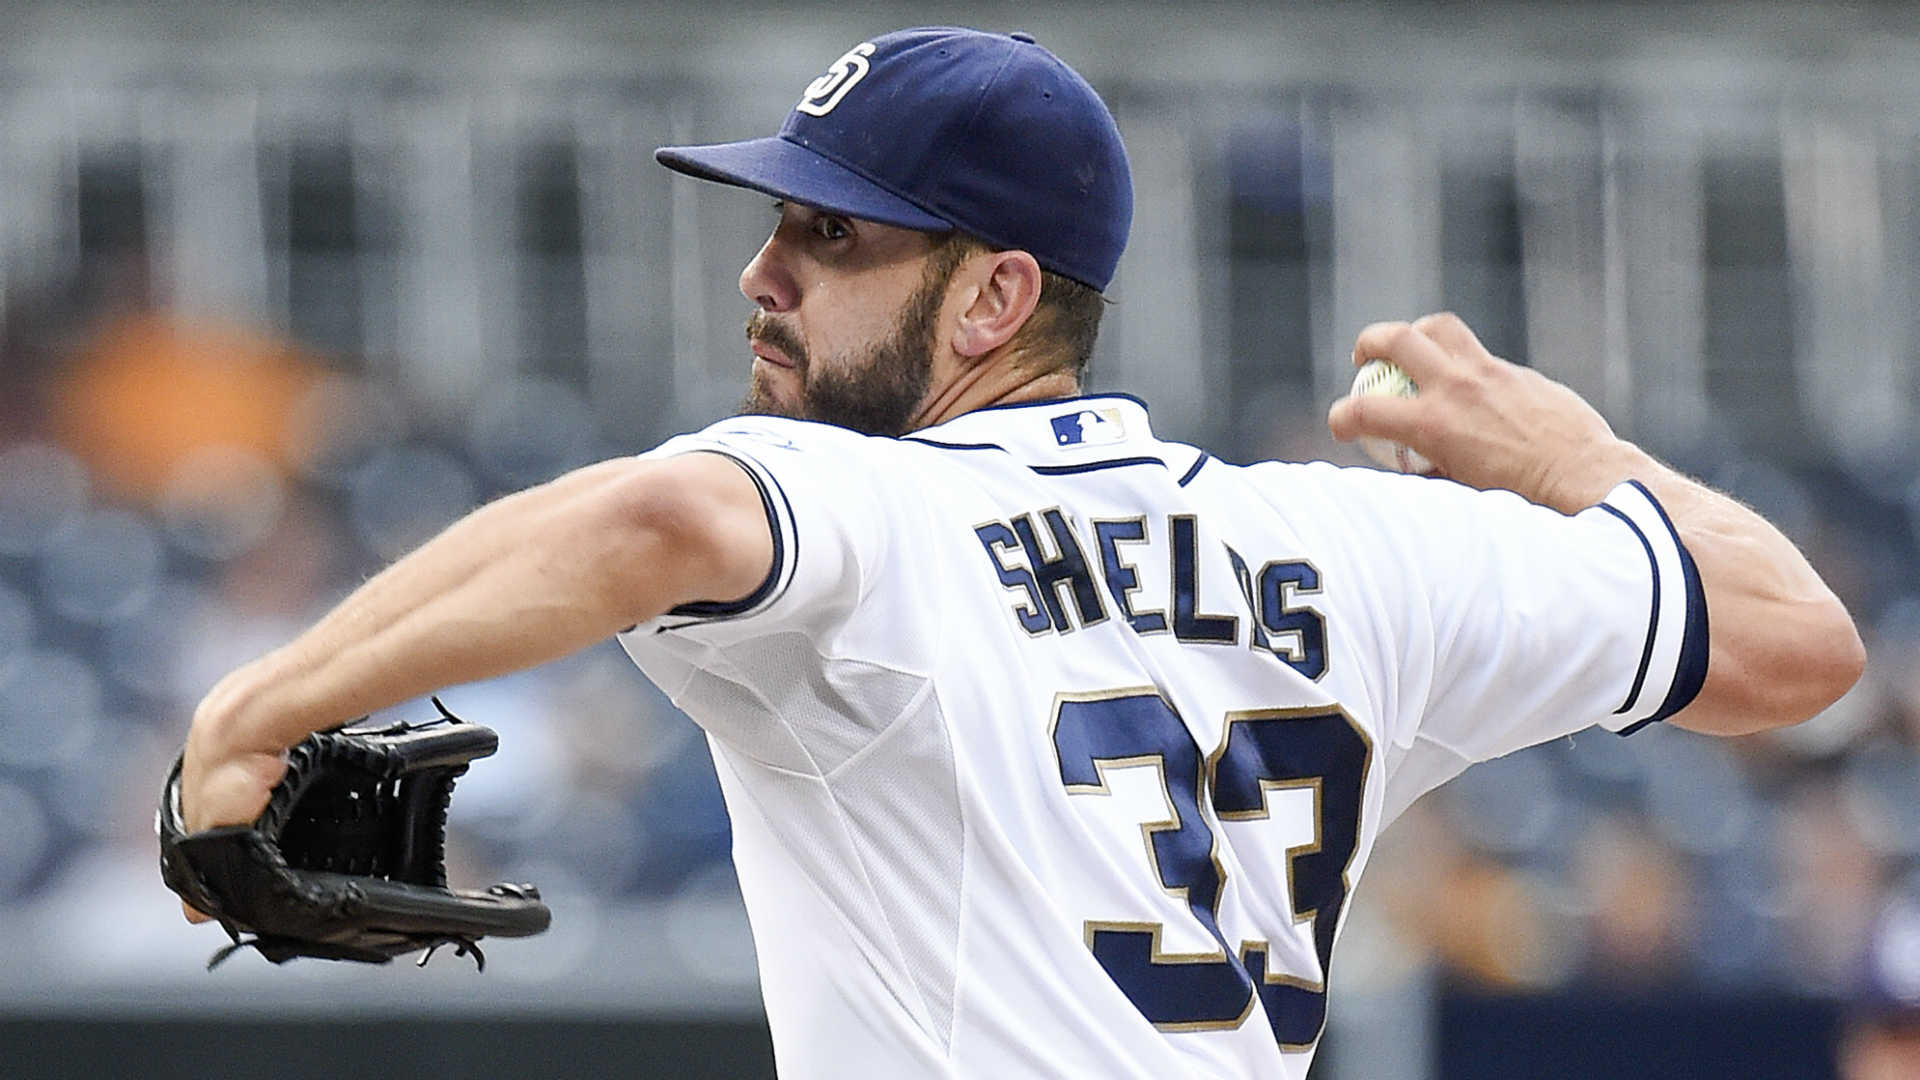 Padres pitcher James Shields